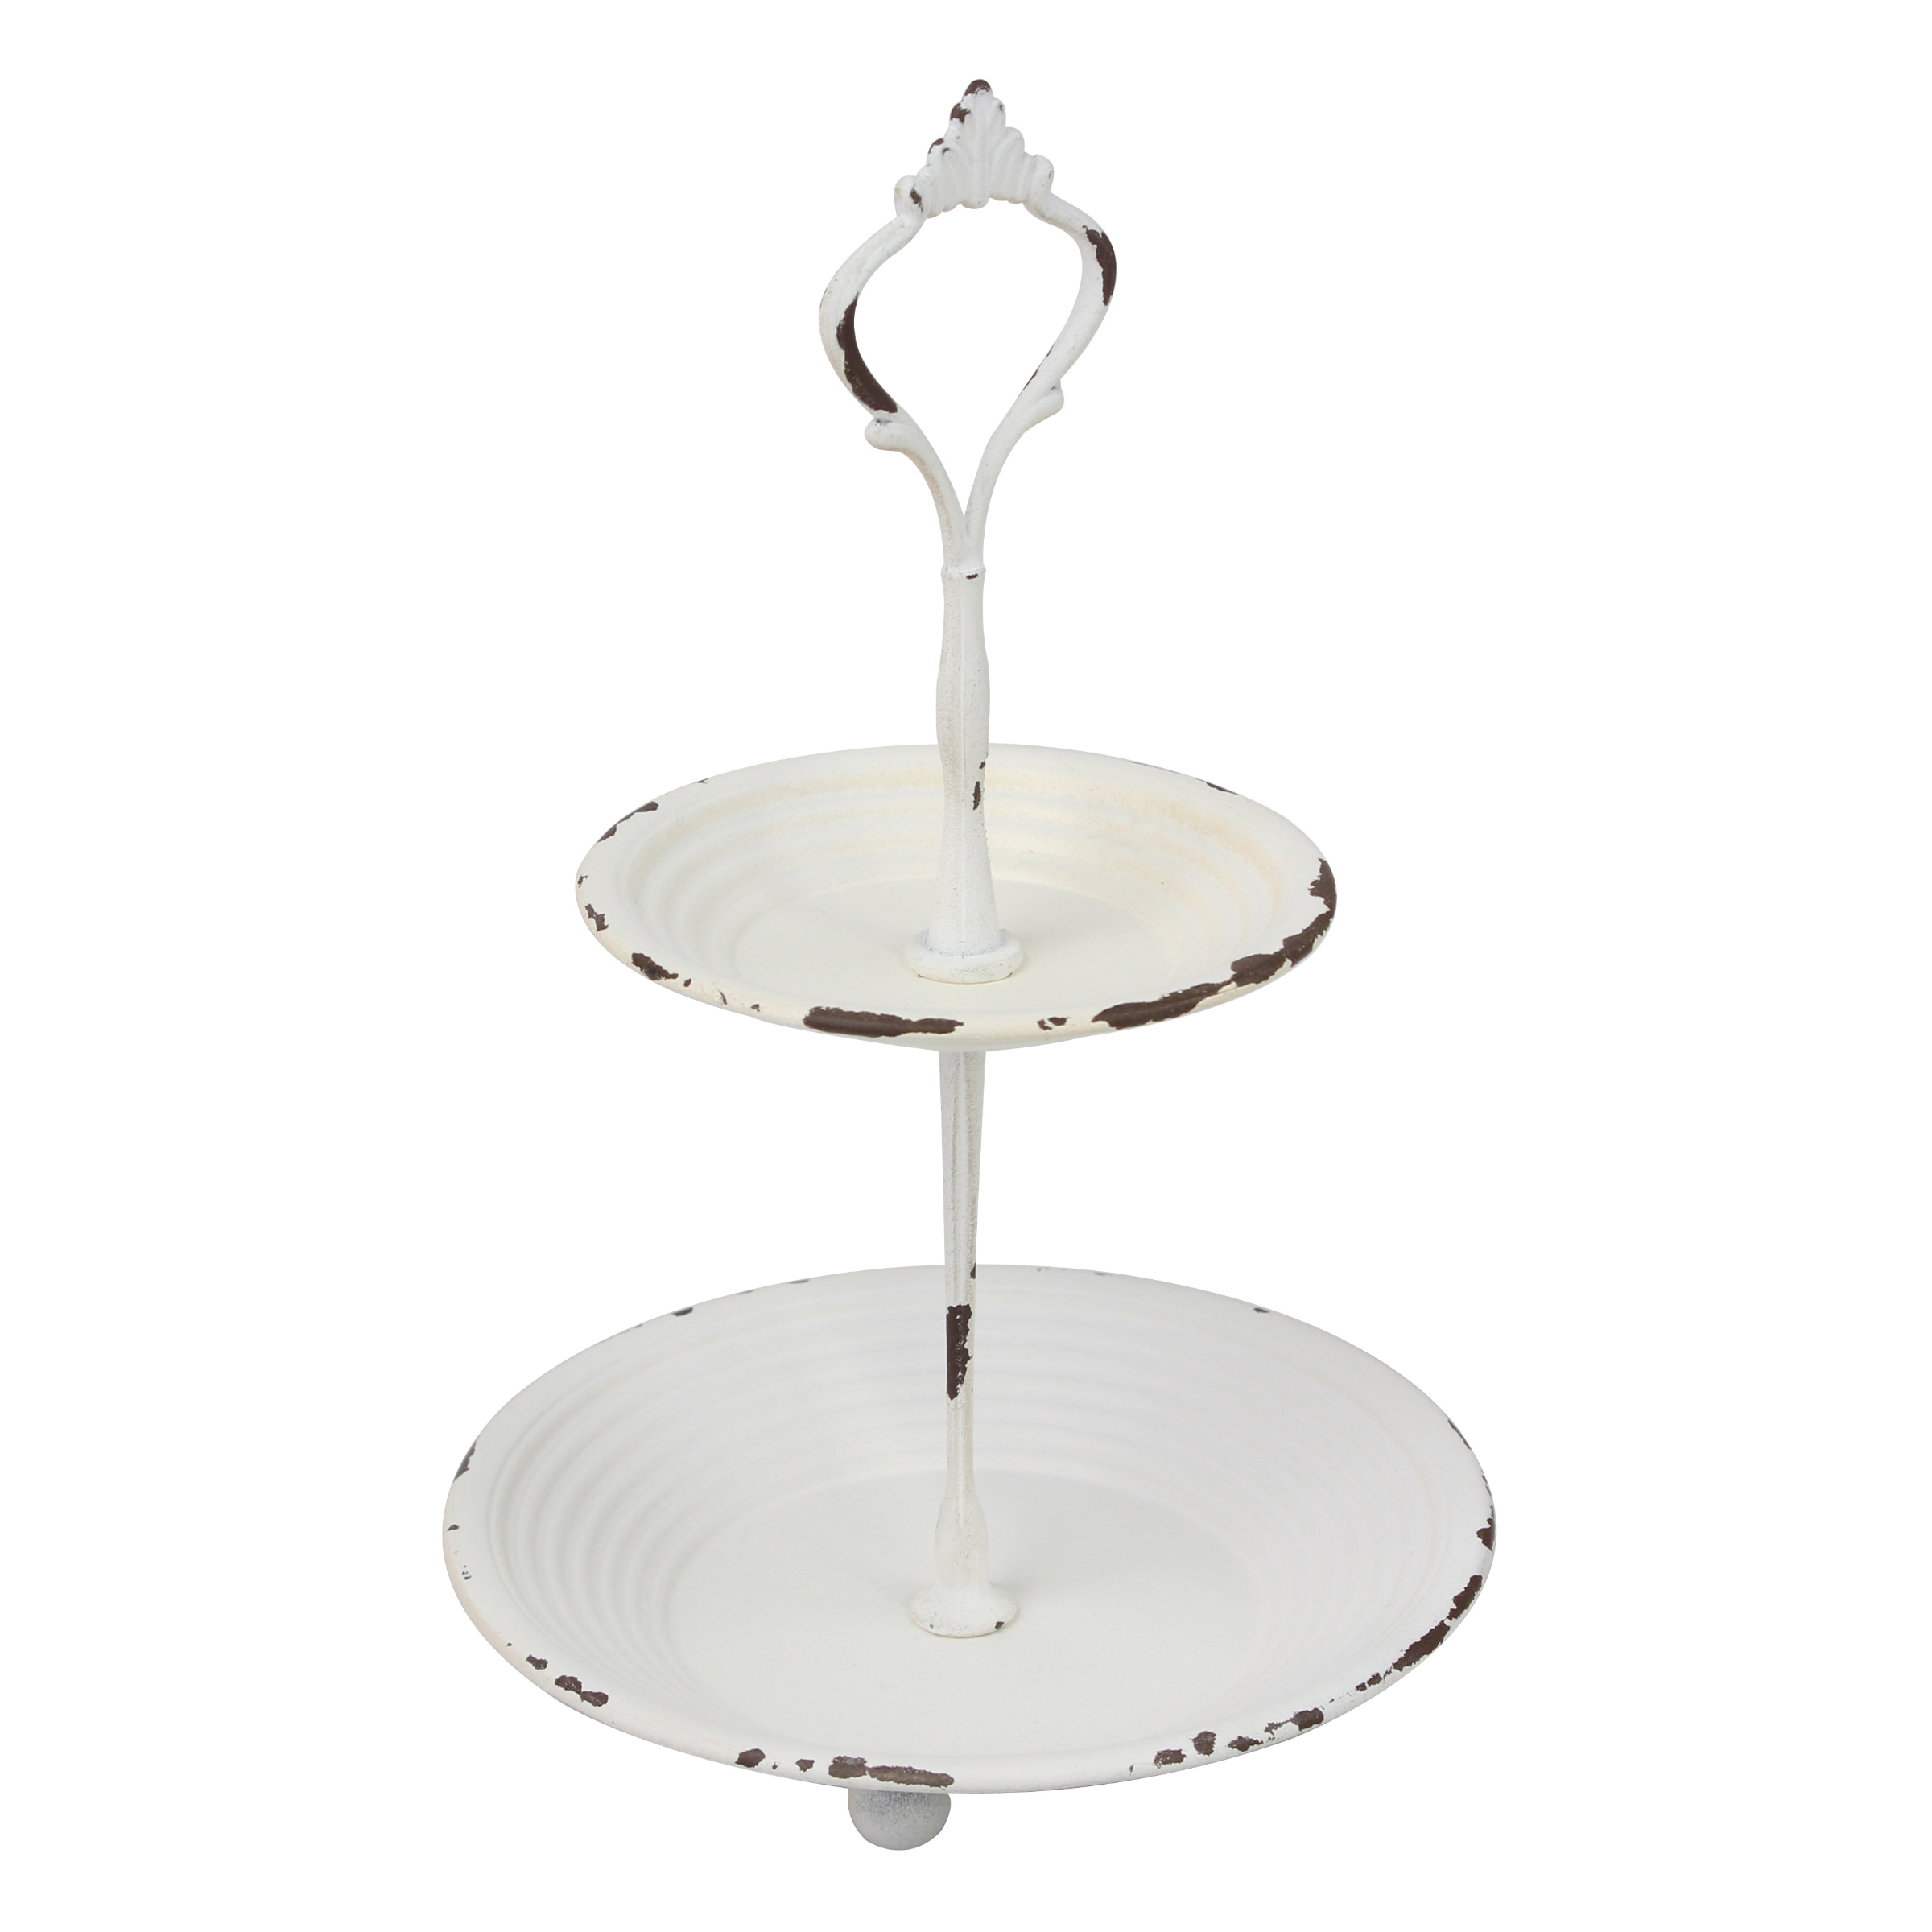 Shabby Chic Worn White Painted 2 Tier Metal Serving Tray With Handle Walmart Com Walmart Com